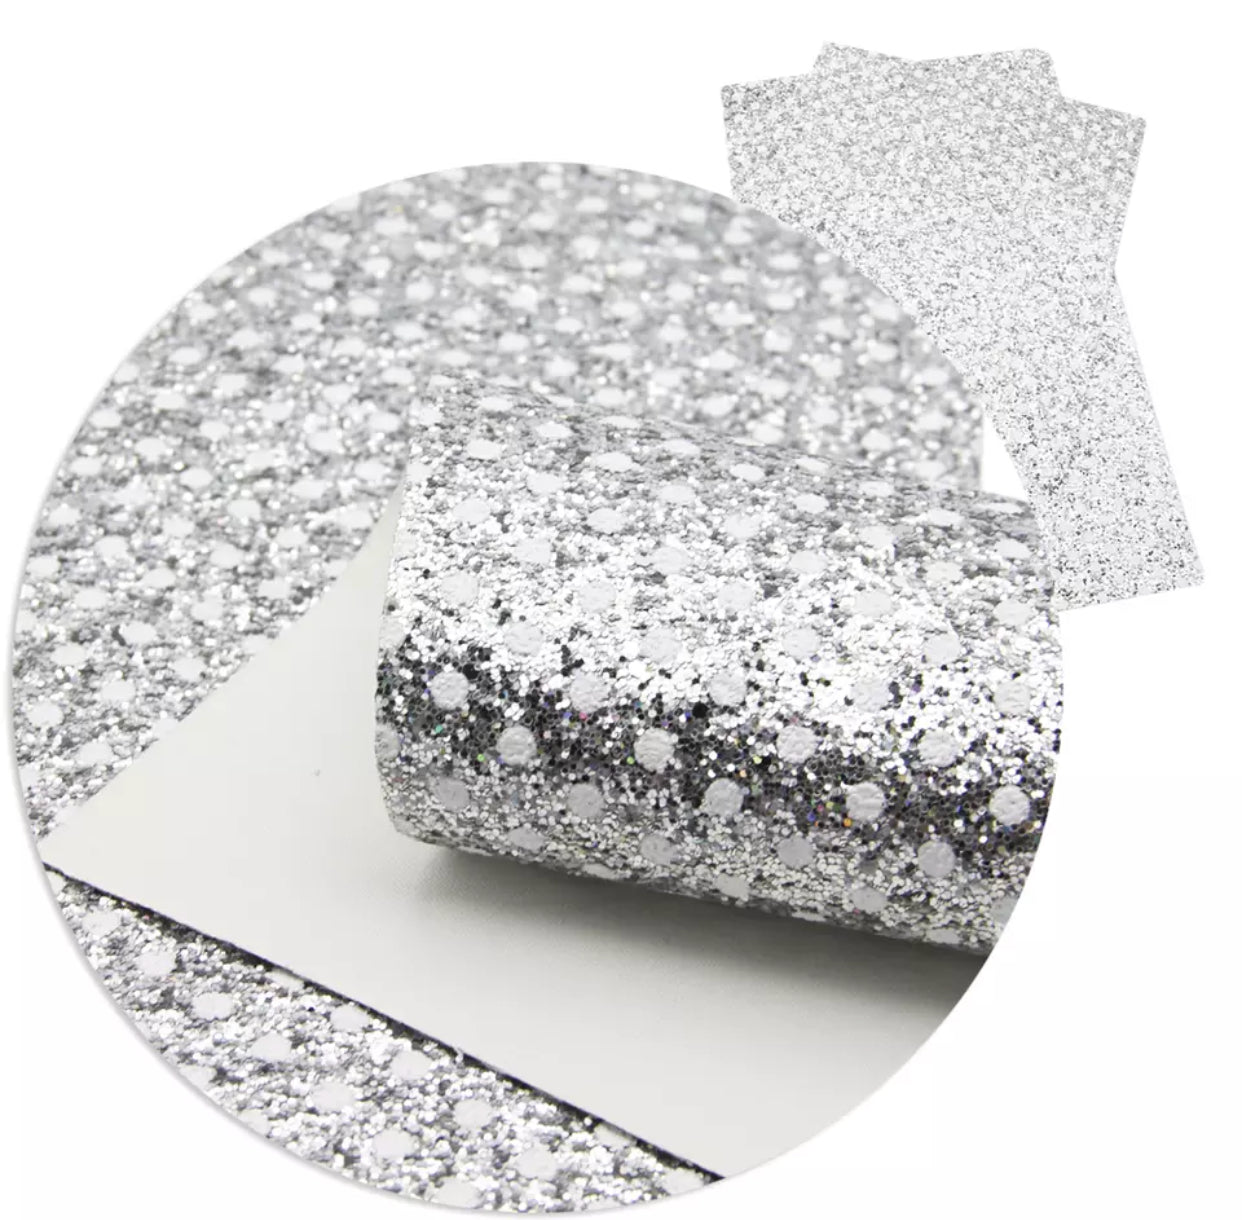 Faux Leather Sheet - White Polka Dots on Silver - shabbyflowers.com